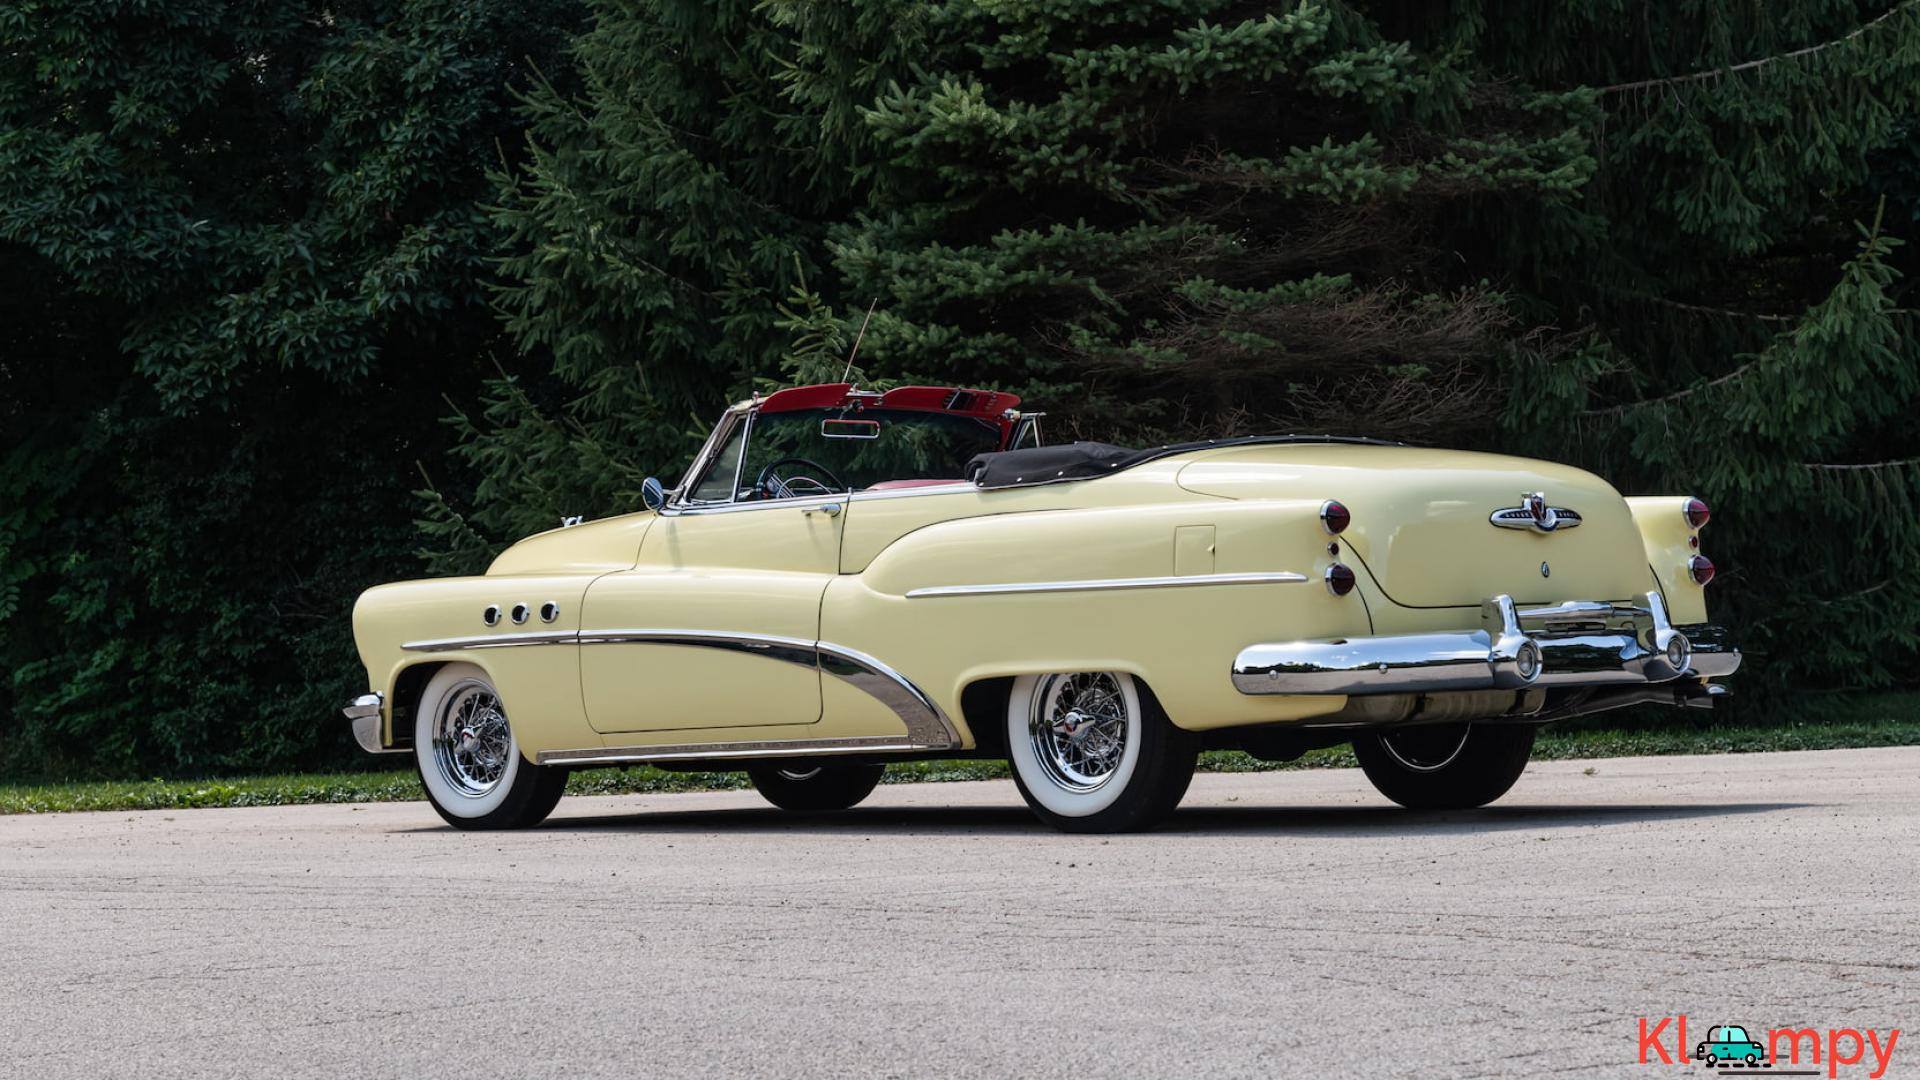 1953 Buick Super Eight Convertible - 5/15